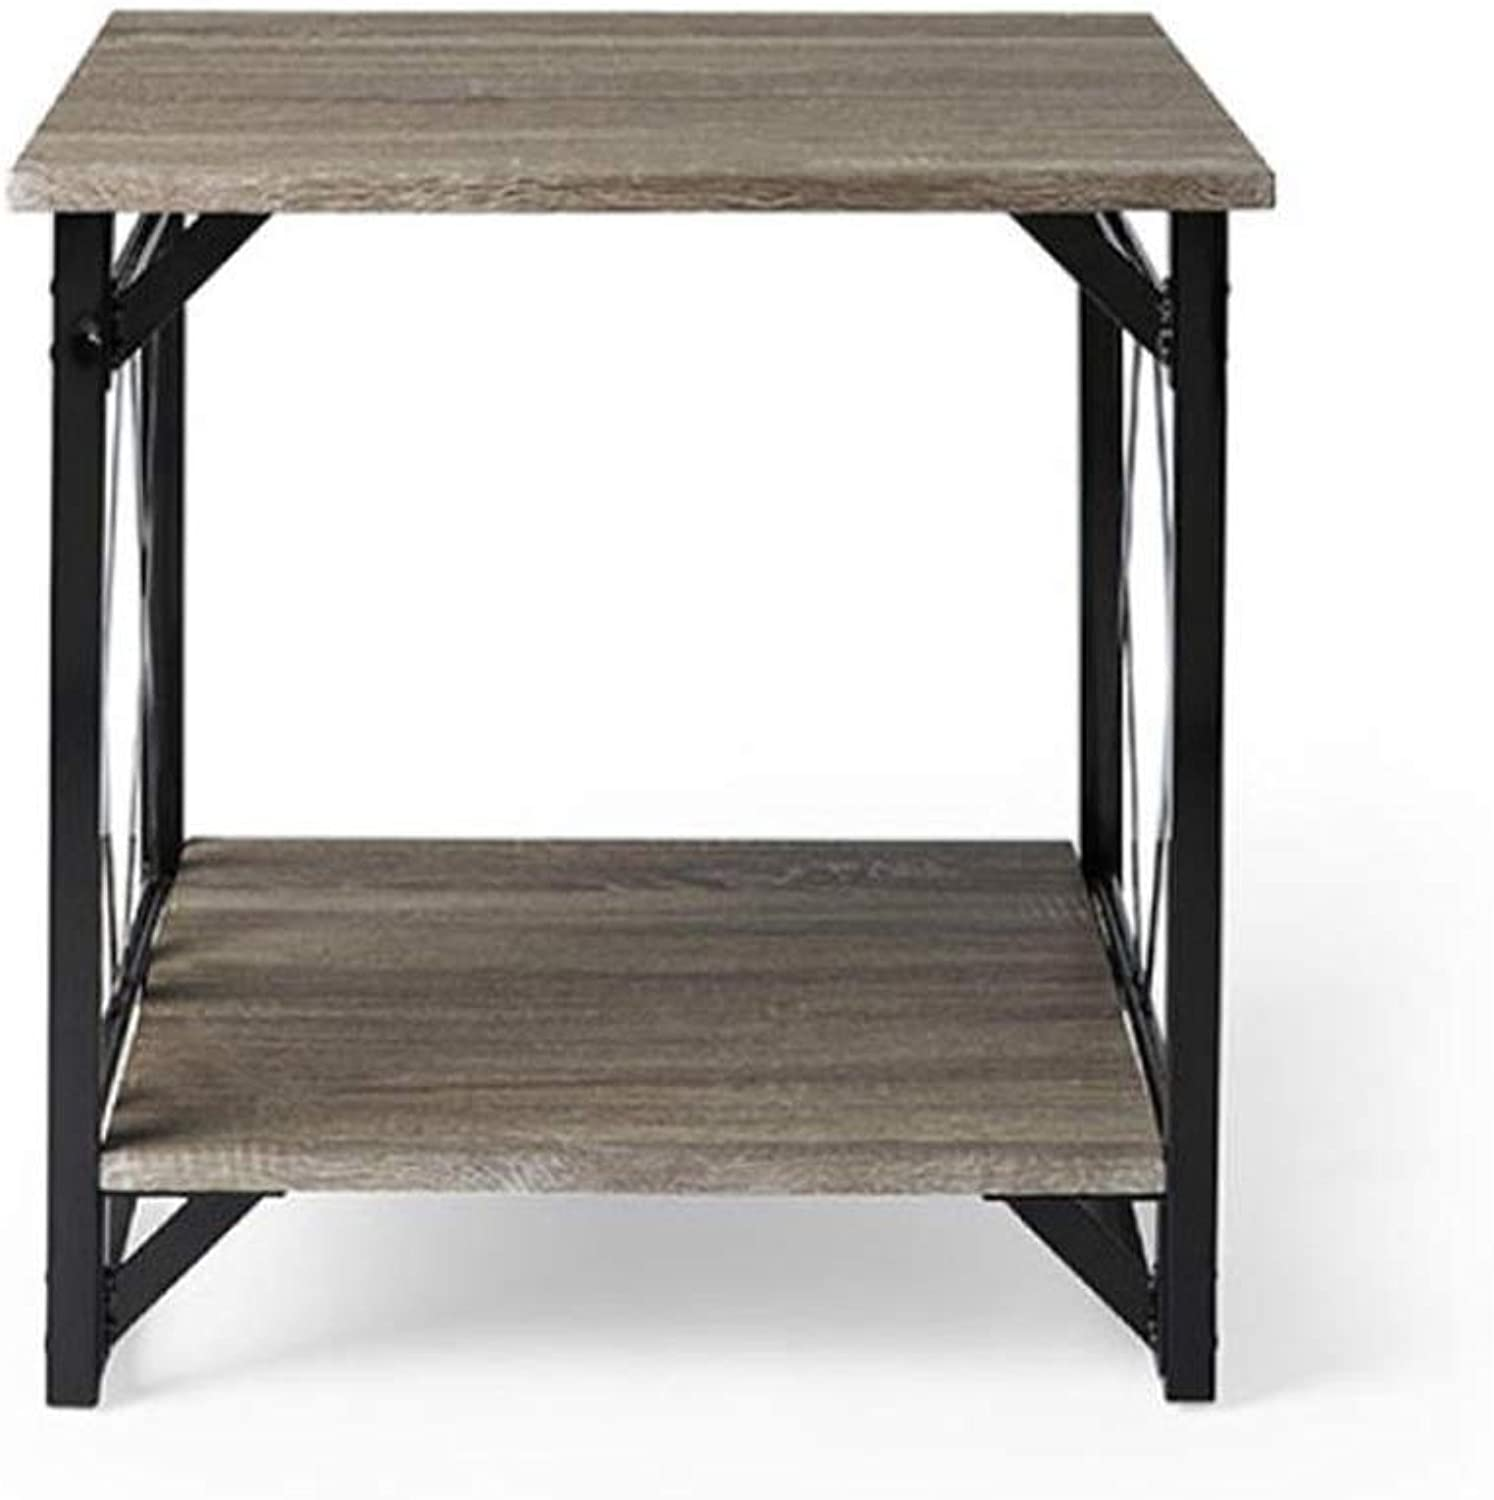 L-Life End Tables Side Table Coffee Table End Table, Natural Oak Wood Legs Living Room Sofa Table Wrought Iron Retro (Size   40CM)